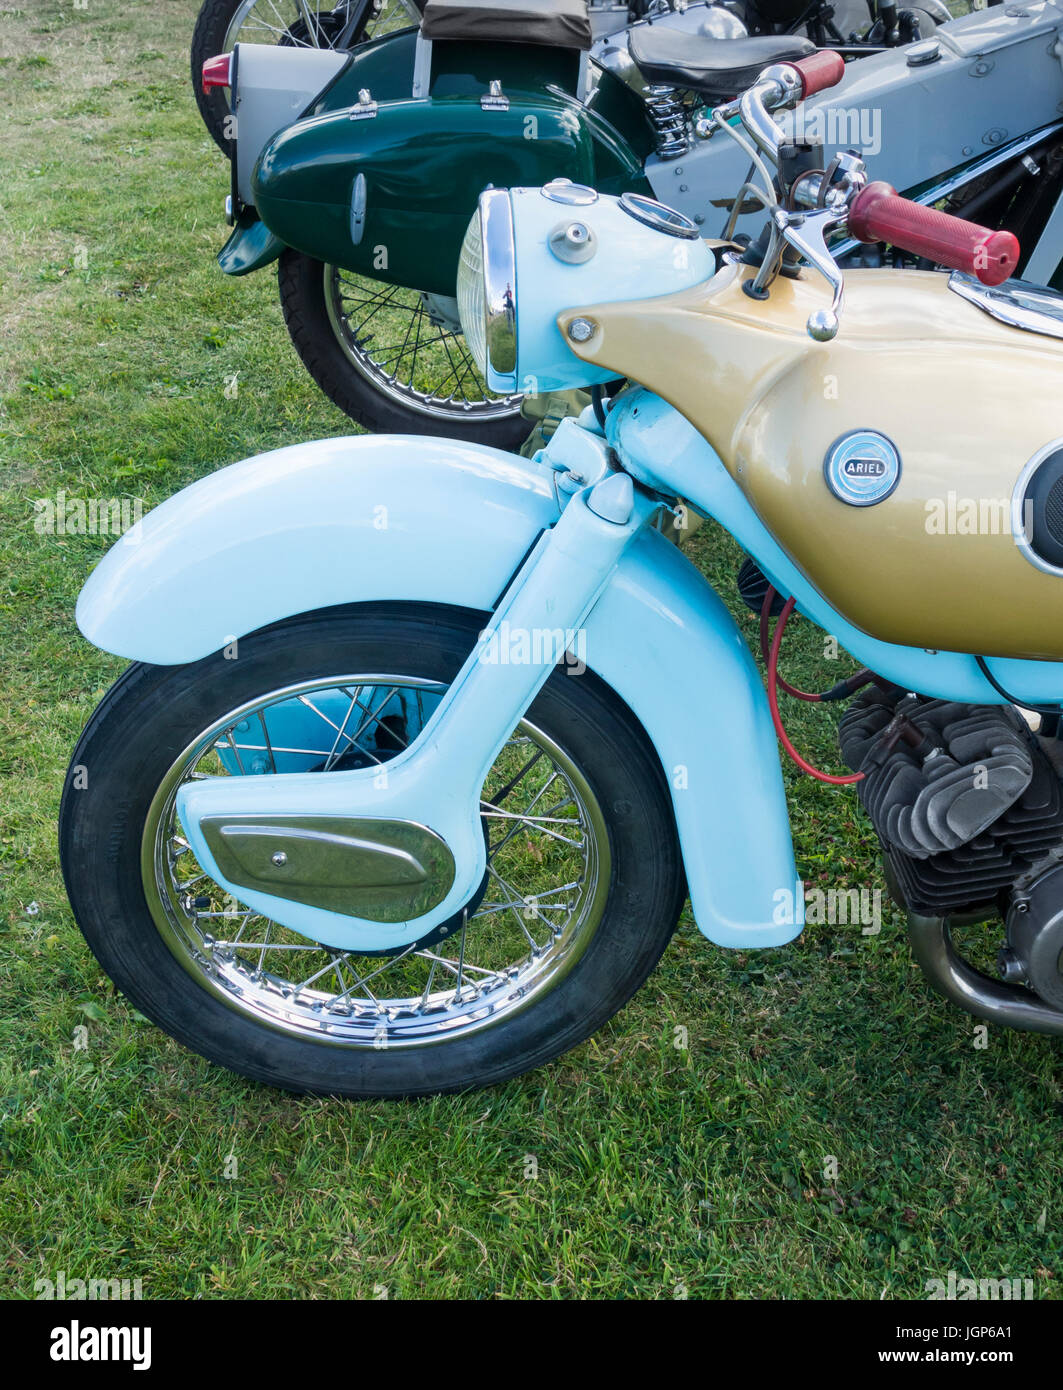 Ariel Arrow motorcycle at rally in UK - Stock Image